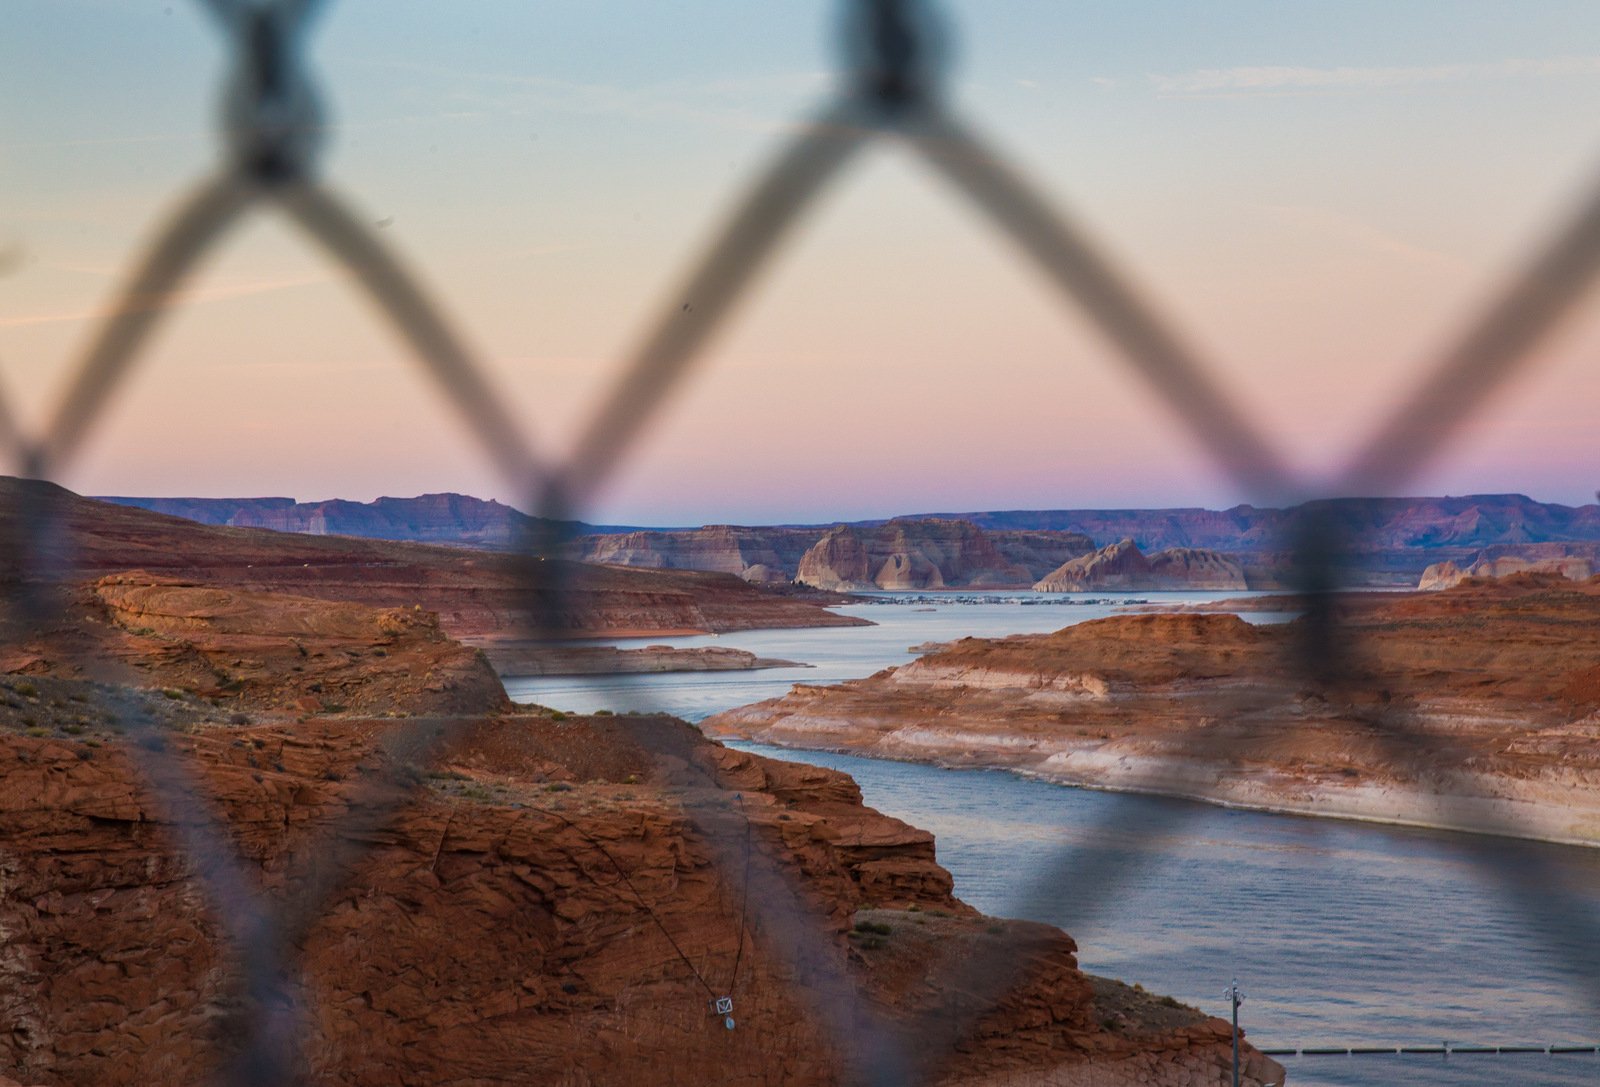 antelope canyon, horseshoe bend, colorado river, travelogue, travelblog, travel photography, landscapes